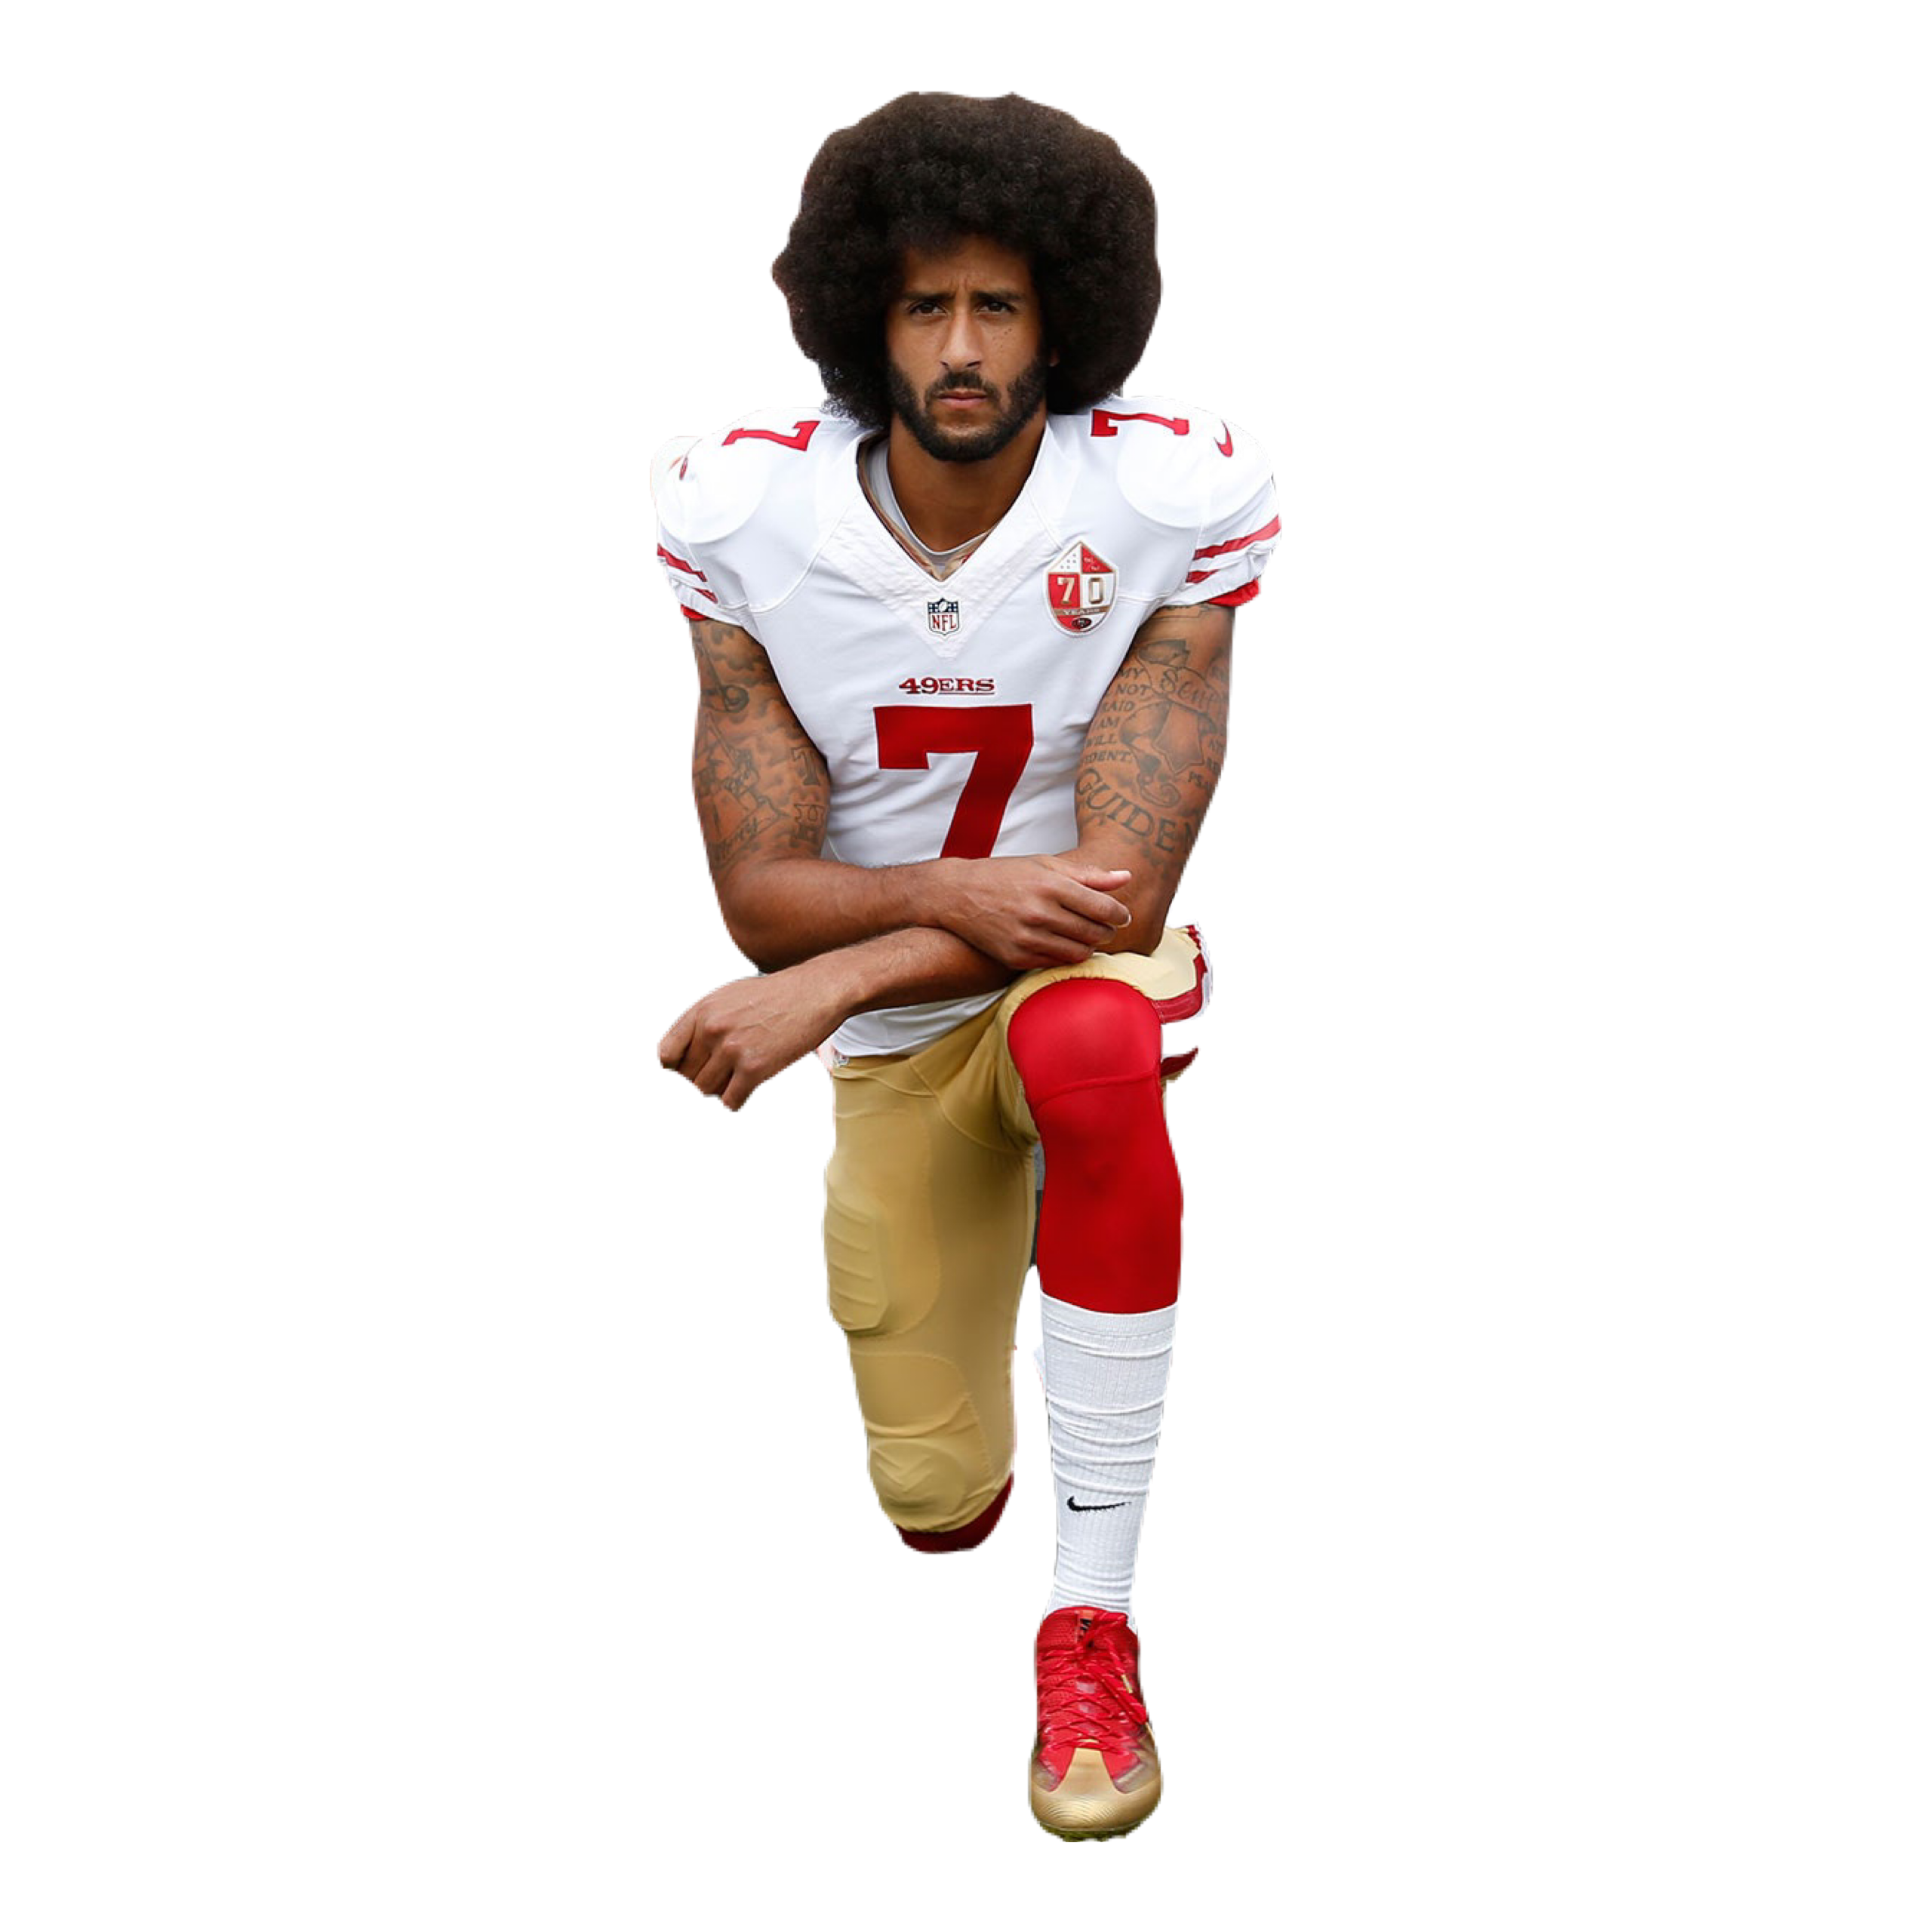 COLIN KAEPERNICK 'MADE A STAND' BY TAKING A KNEE IN 2016